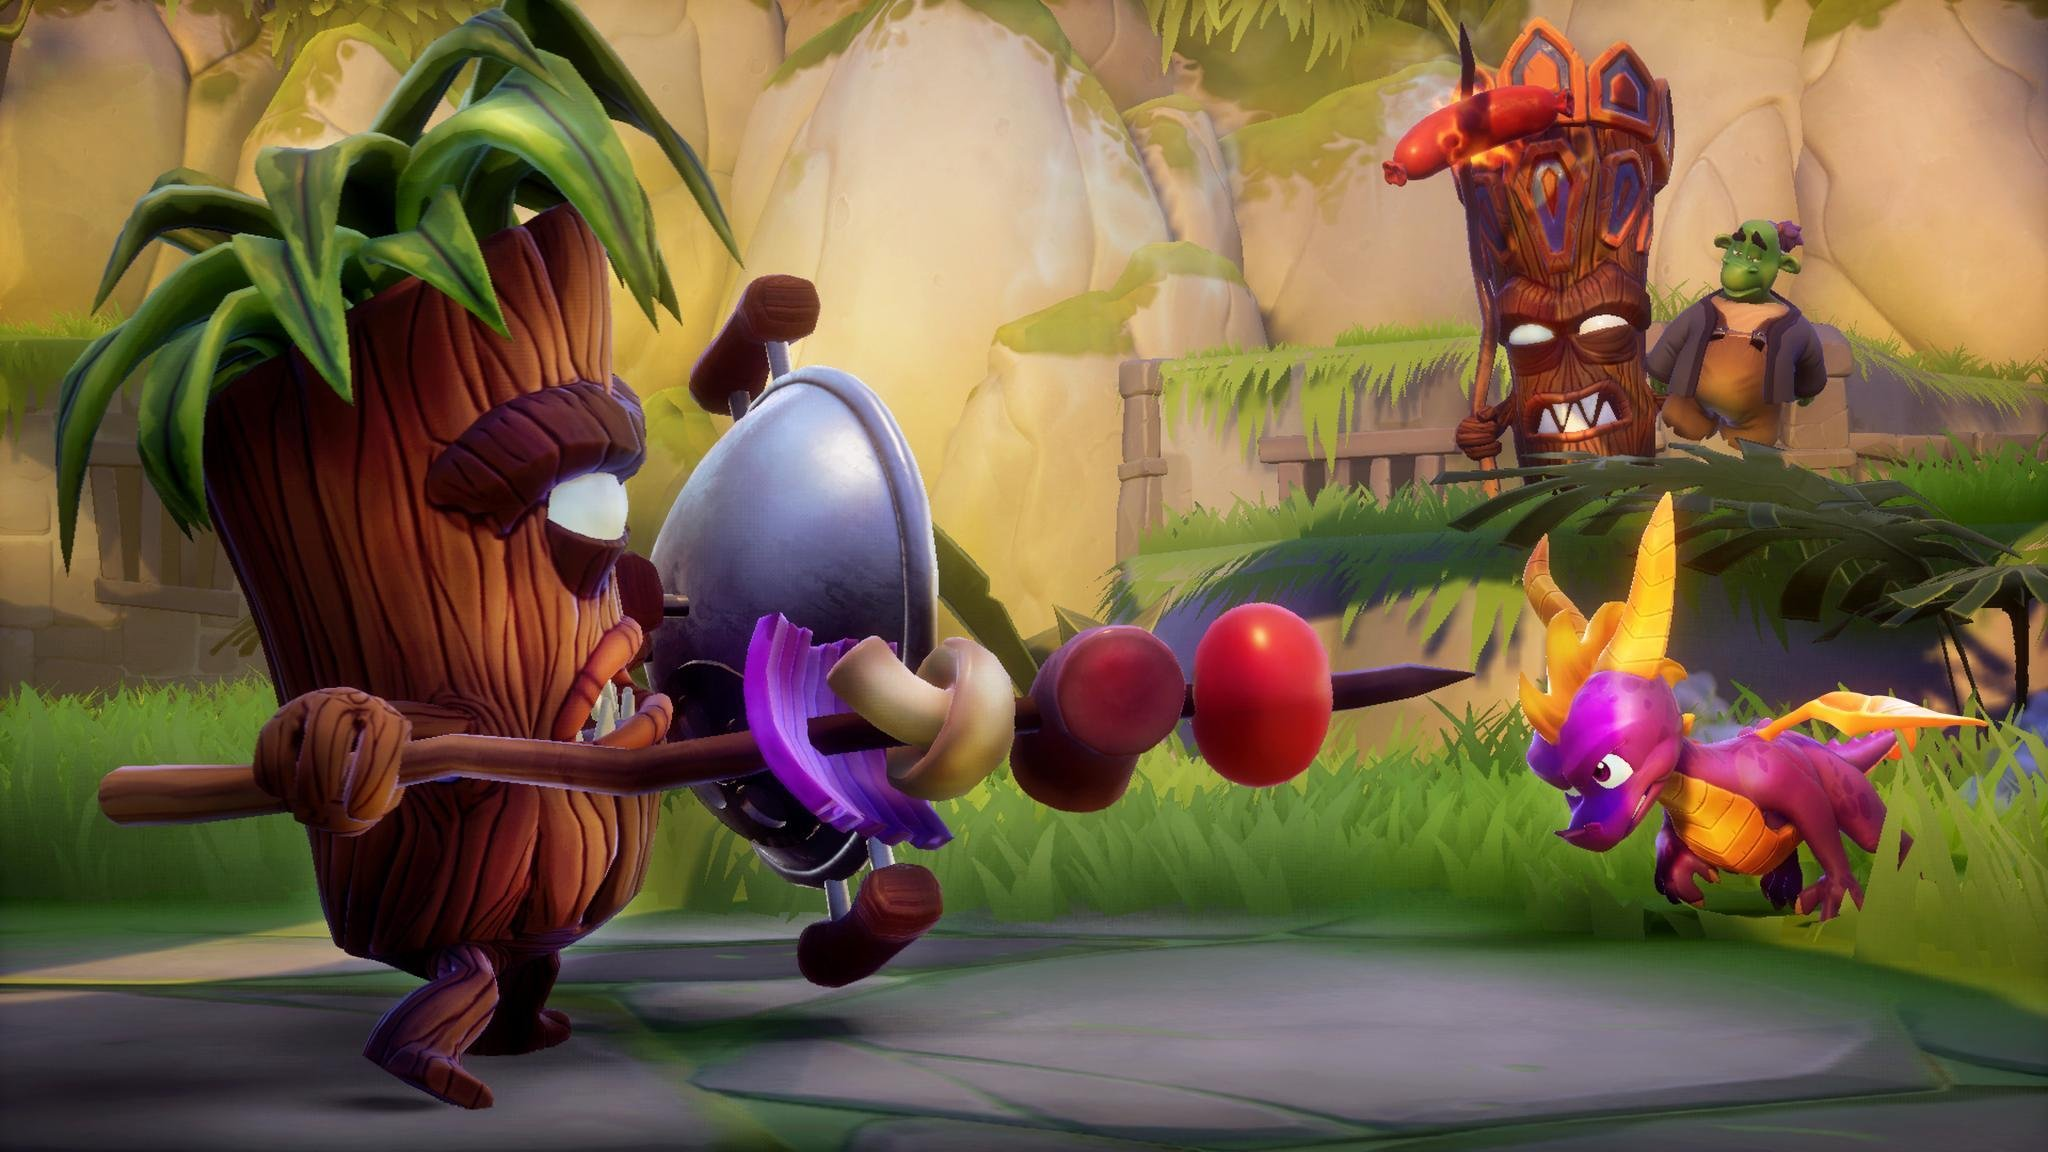 Gameplay footage of Spyro Reignited Trilogy